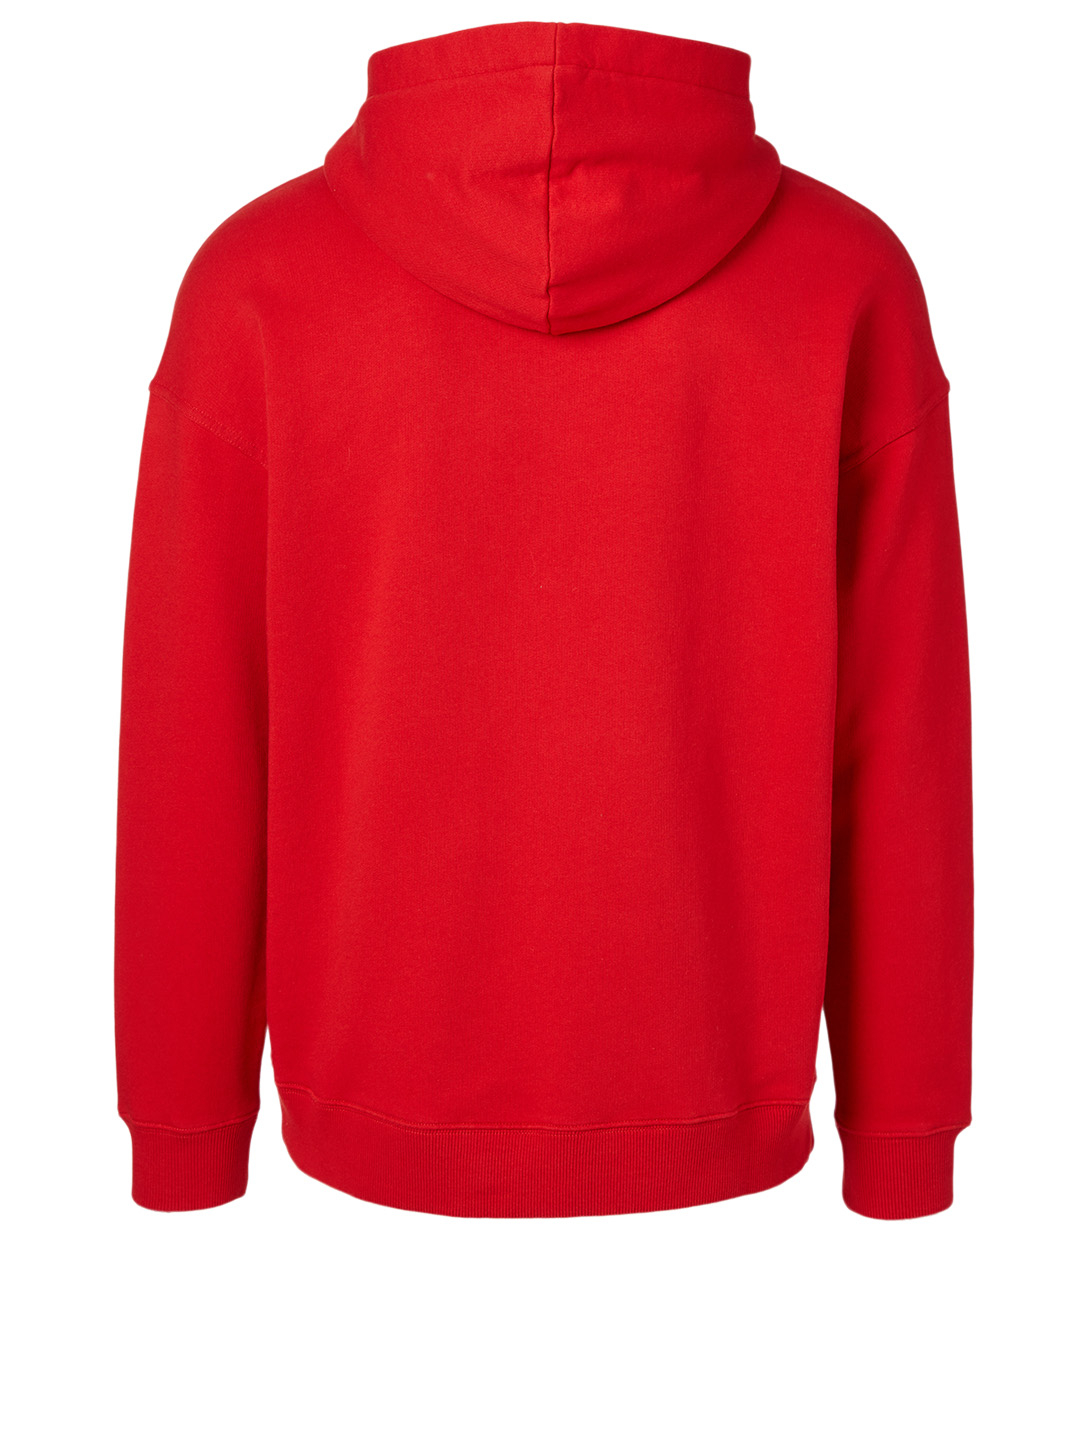 GIVENCHY Vintage Logo Hoodie Men's Red